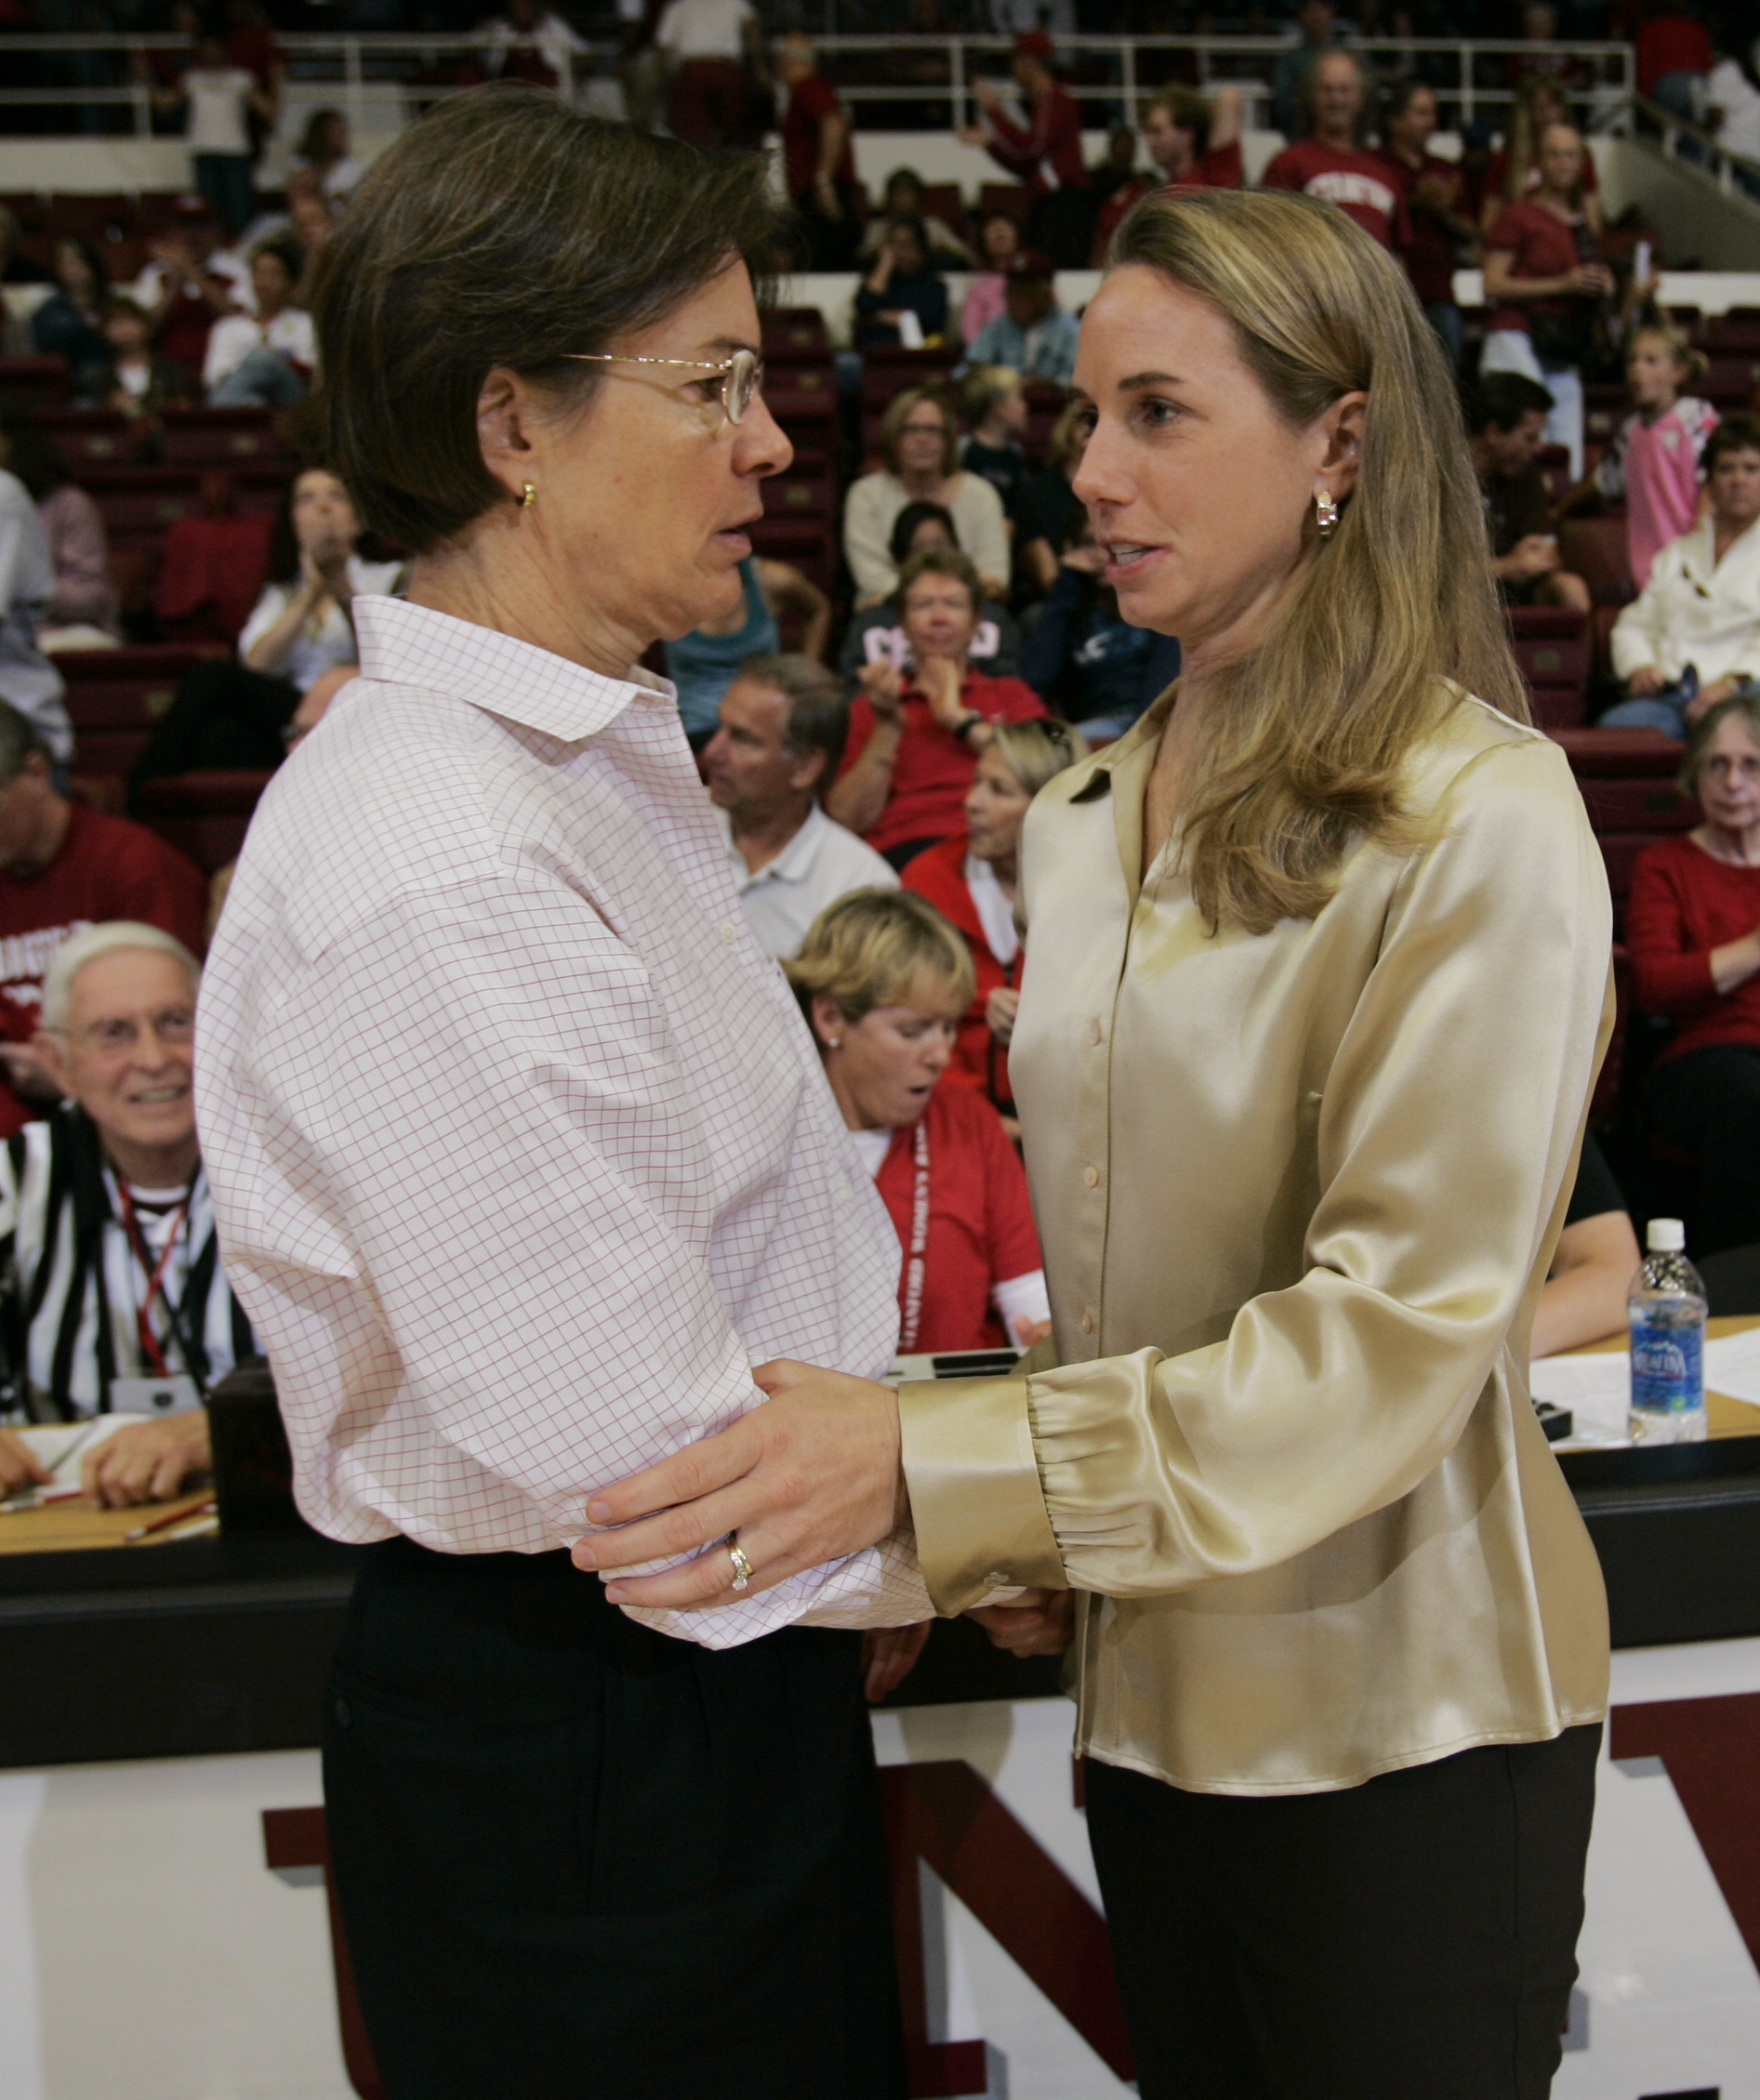 Chico State coach Molly Goodenbour, right, shake hands with Stanford coach Tara VanDerveer, left, after Stanford defeated Chico State 95-44 in an basketball game in Stanford, Calif., Saturday, Nov. 3, 2007. Goodenbour played for VanDerveer at Stanford sev